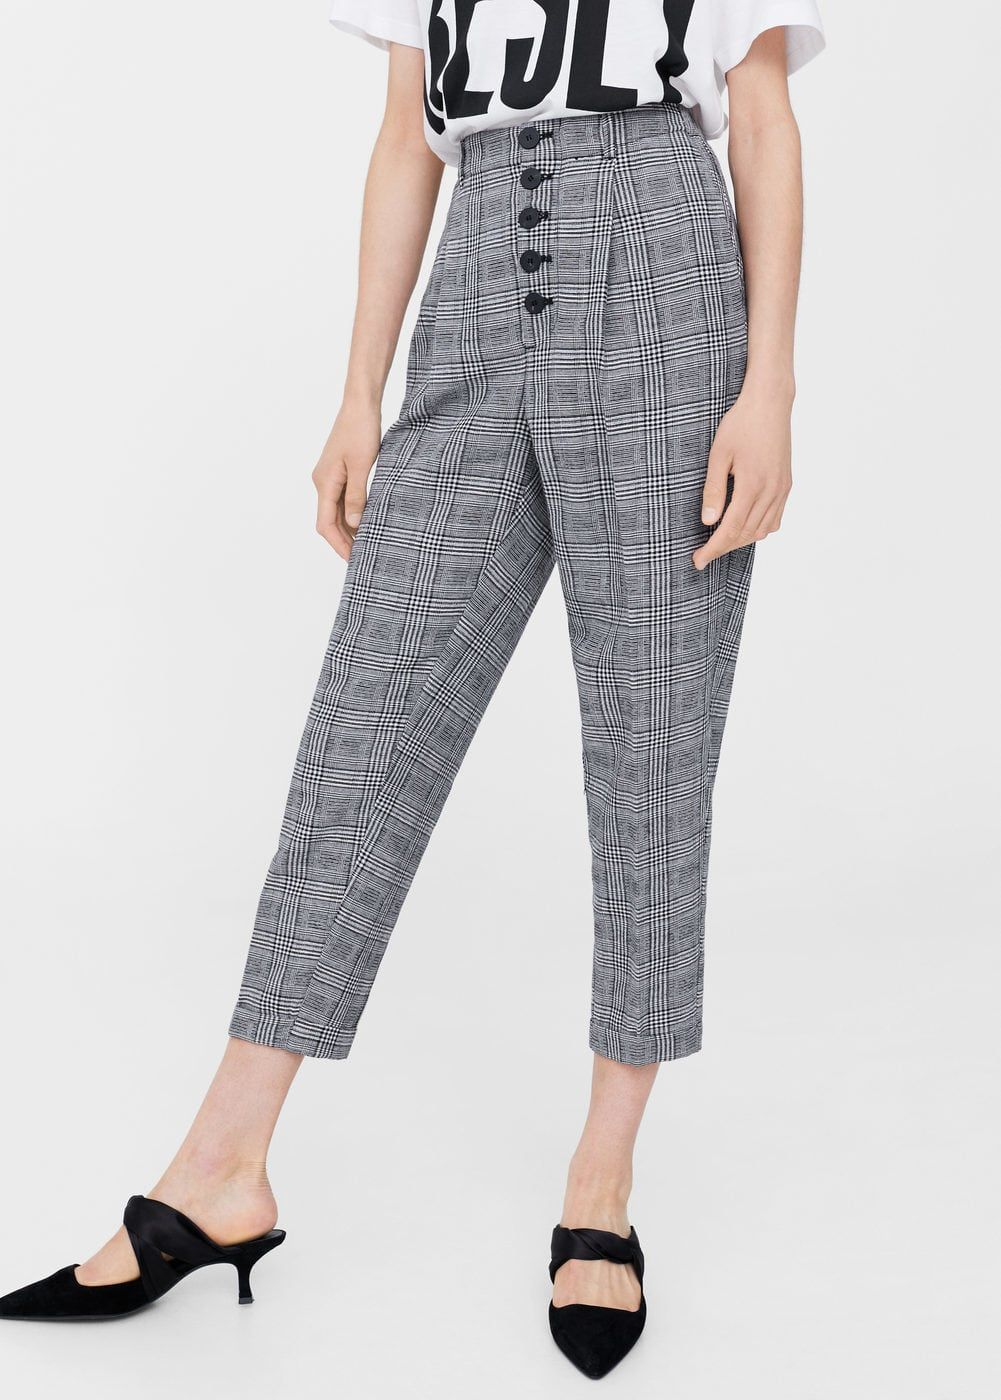 03a52654e3 Prince of wales trousers | MANGO Checked Trousers, Pantsuits For Women,  Comfy Pants,